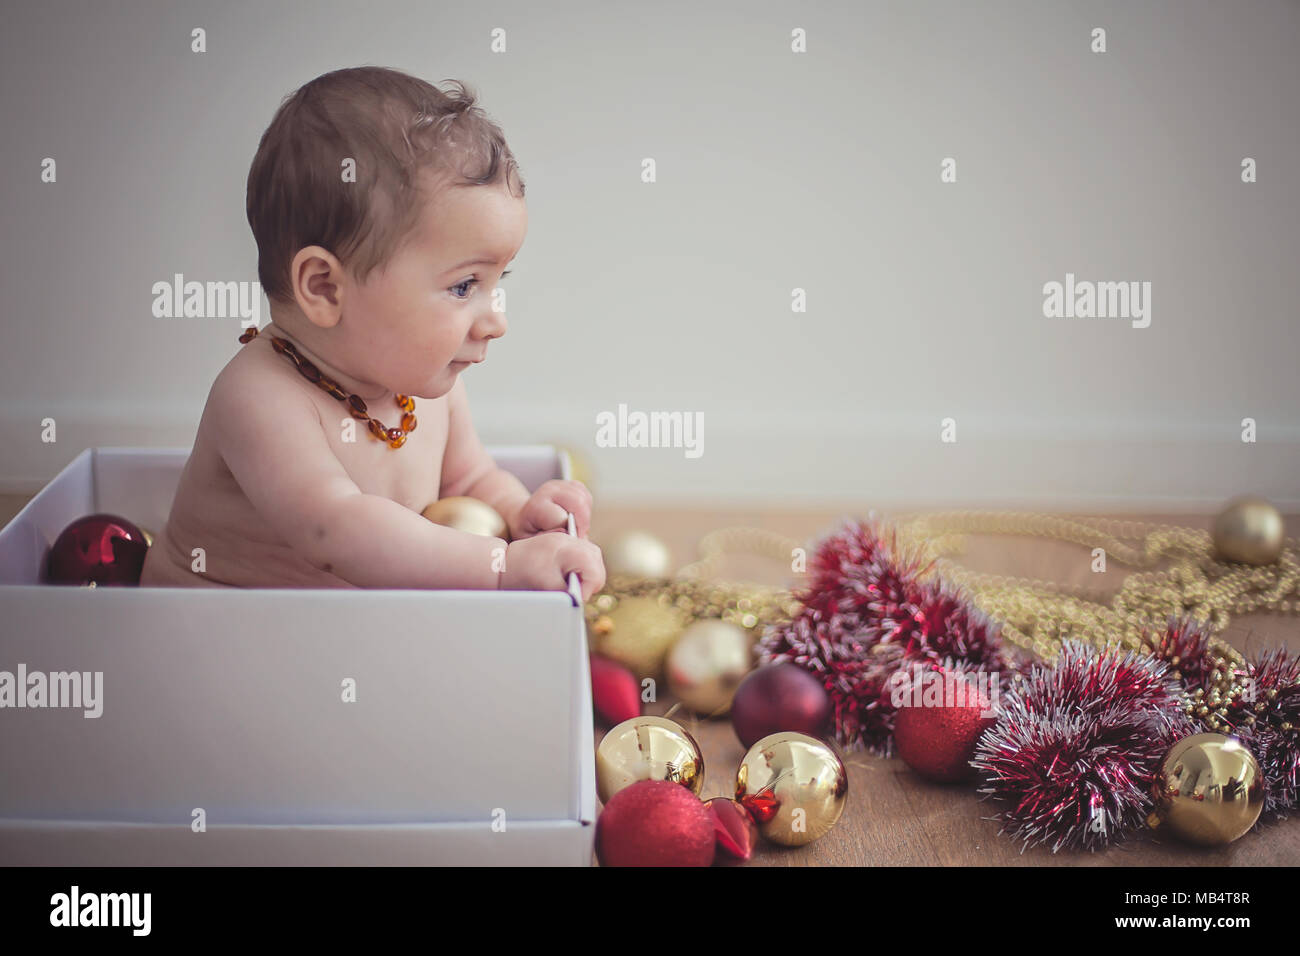 6 month old baby in a box with christmas decorations - Stock Image